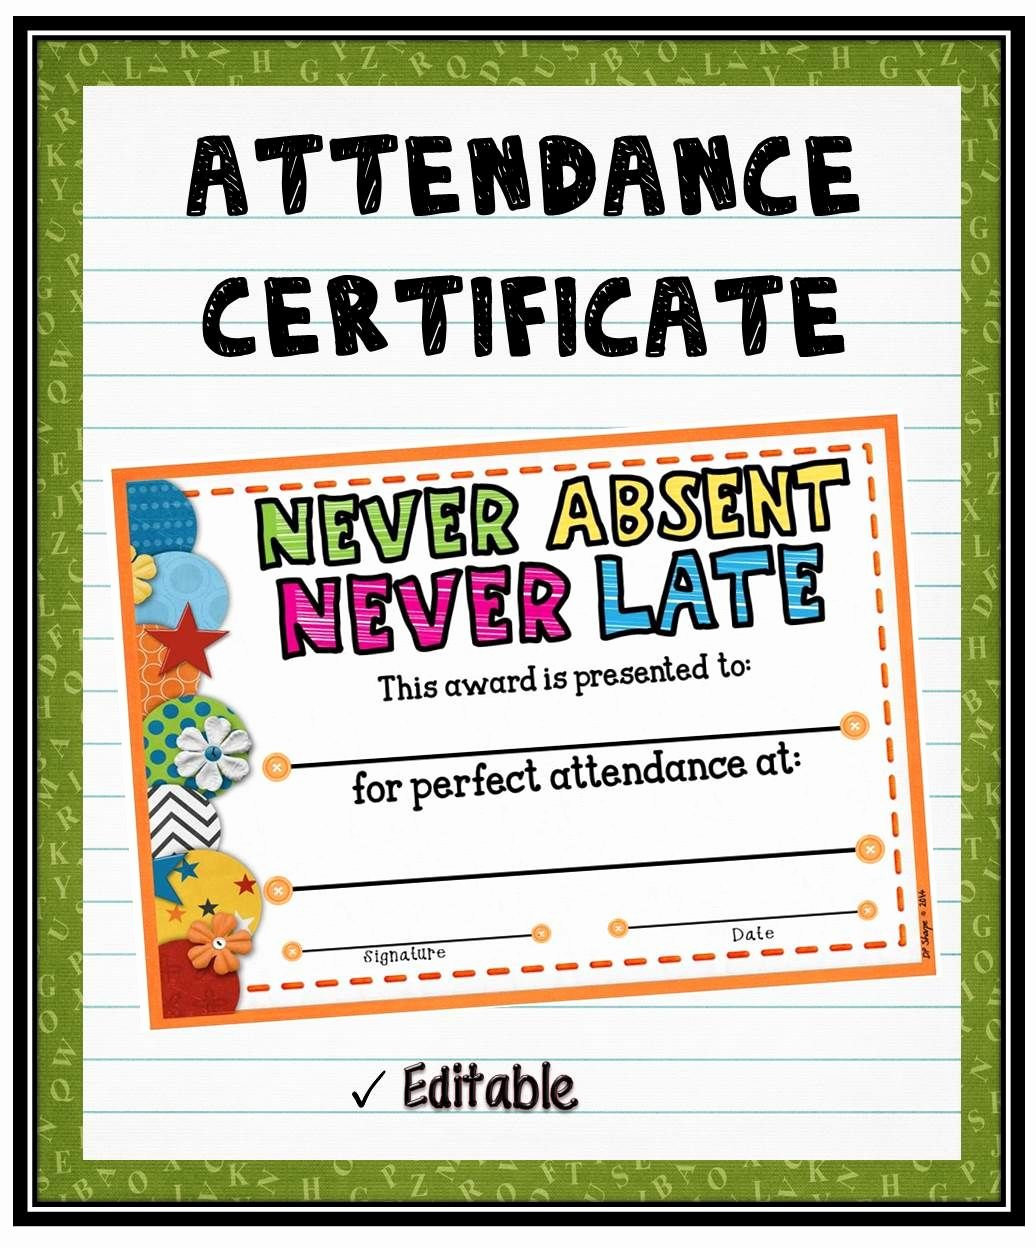 Perfect attendance Certificate Free Download Inspirational attendance Certificate 2 Fillable